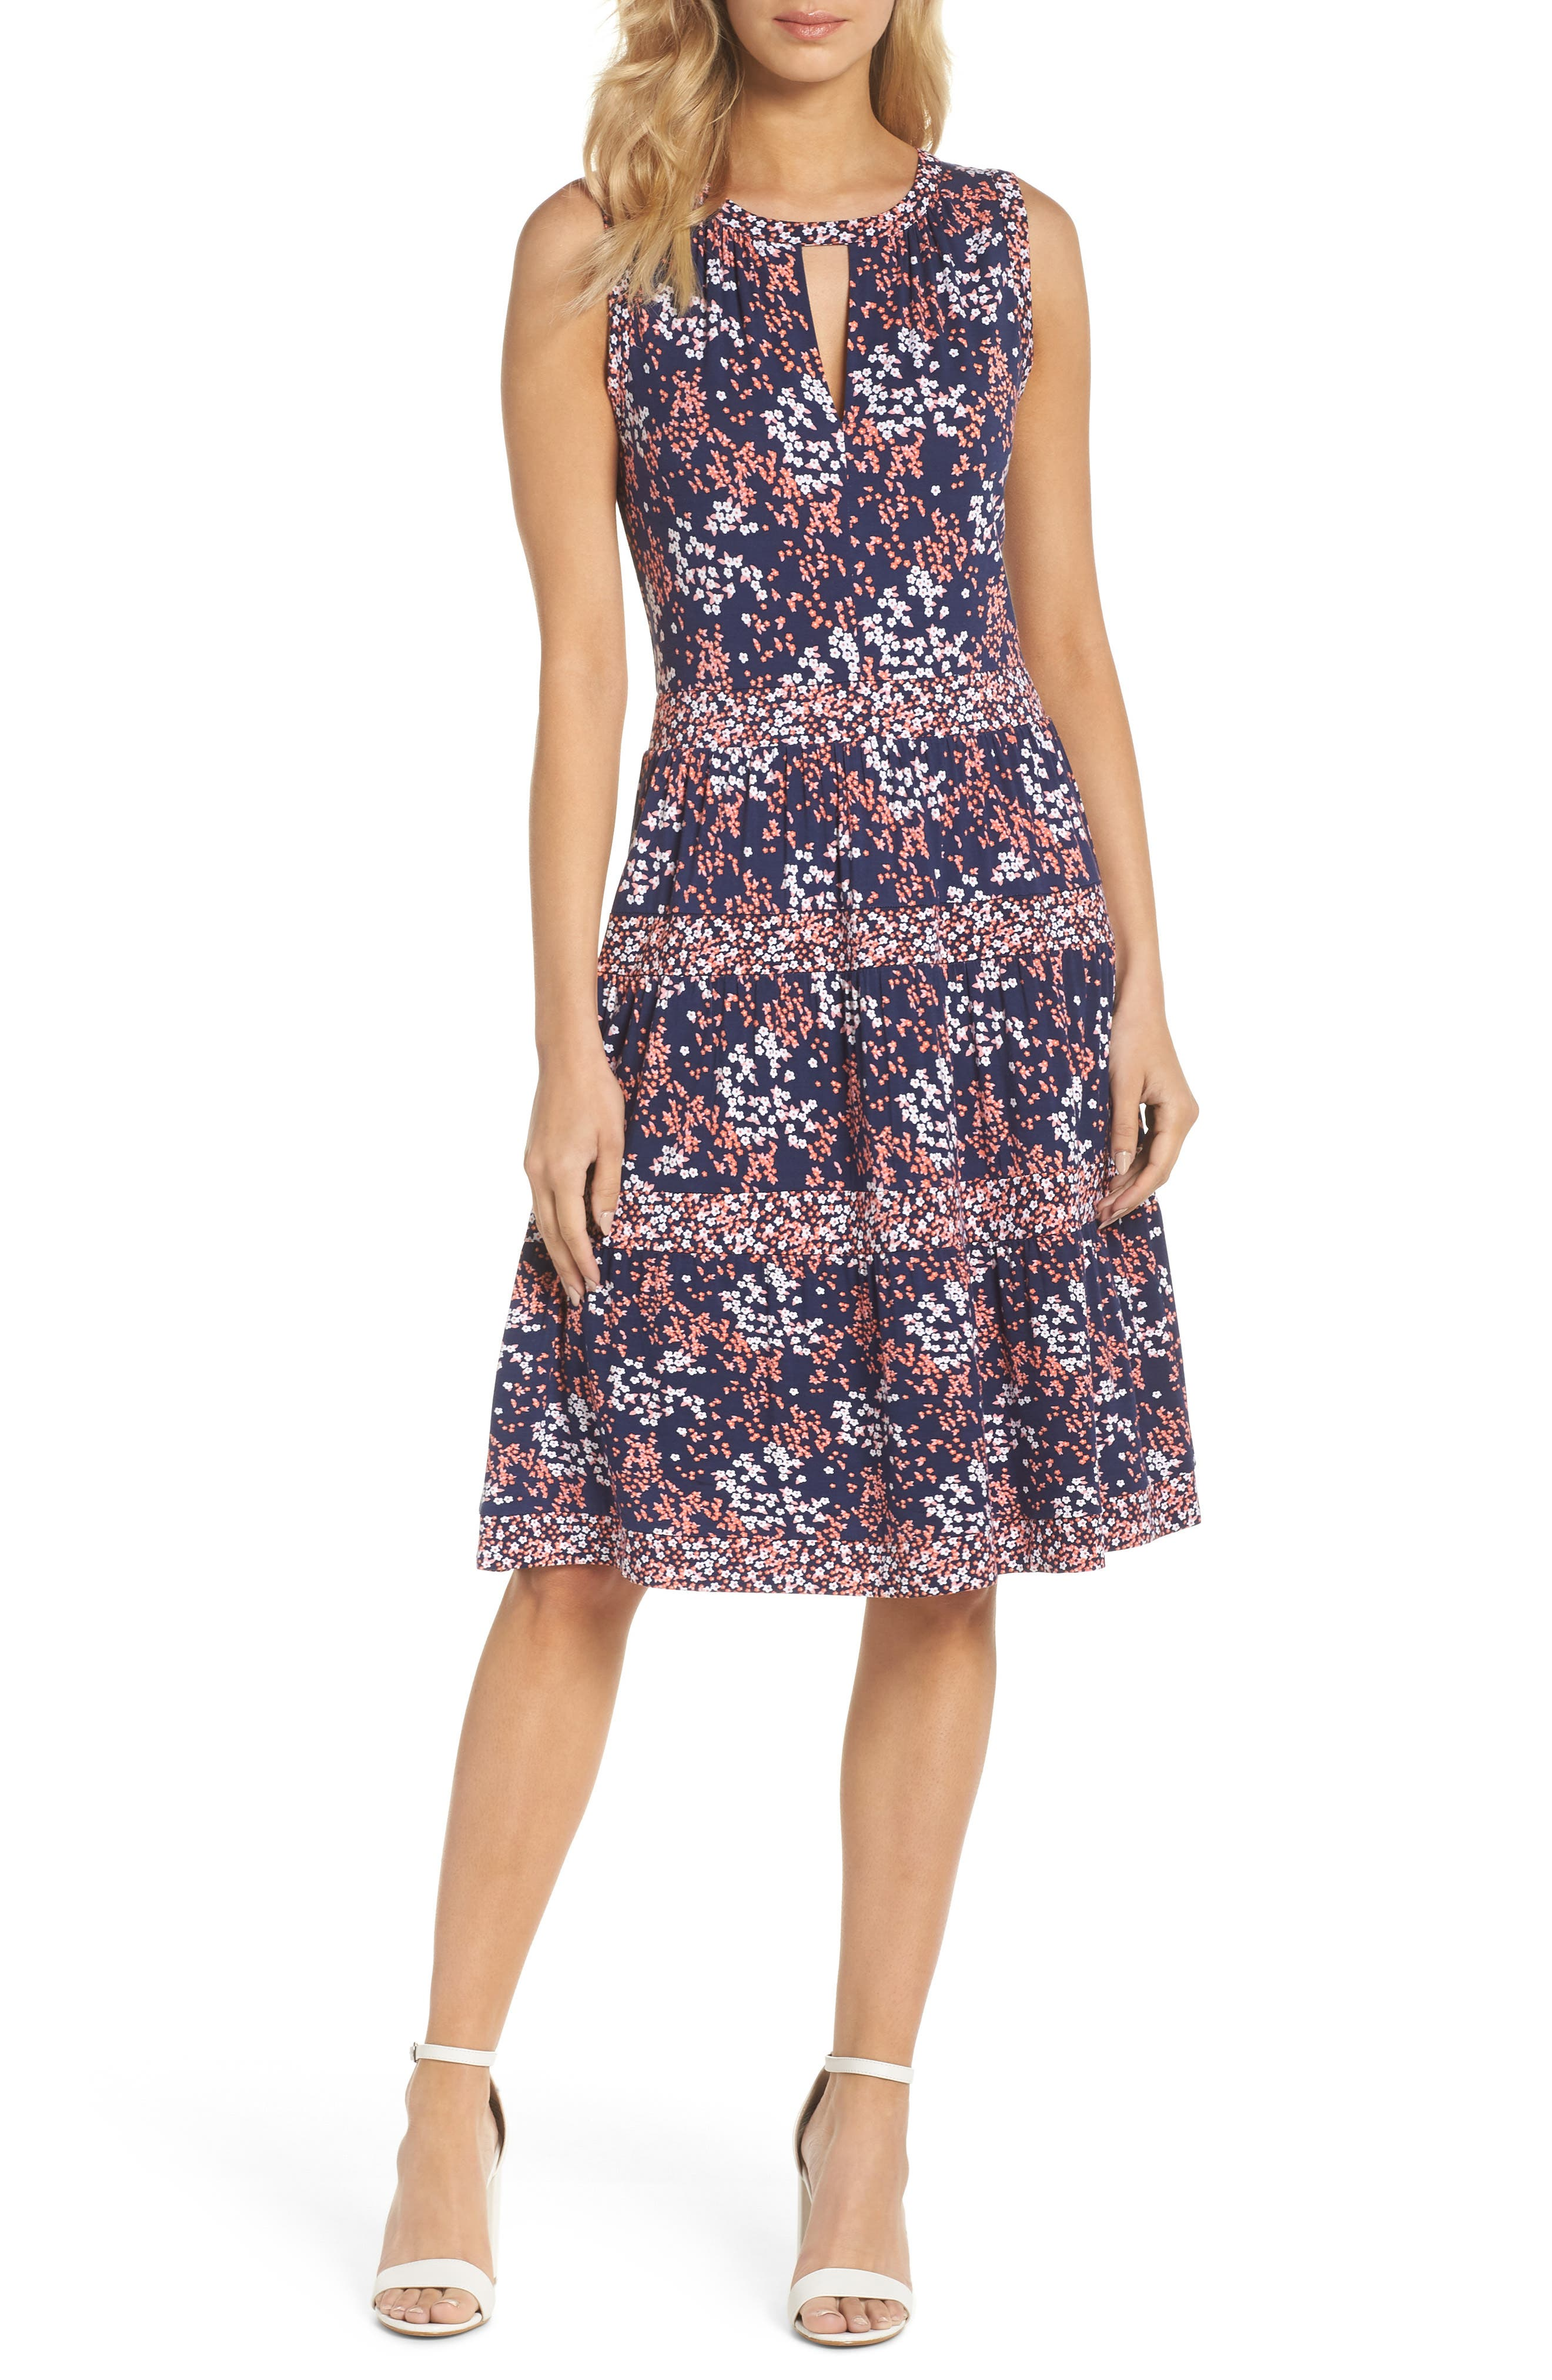 BLOOMS BORDER TIERED DRESS